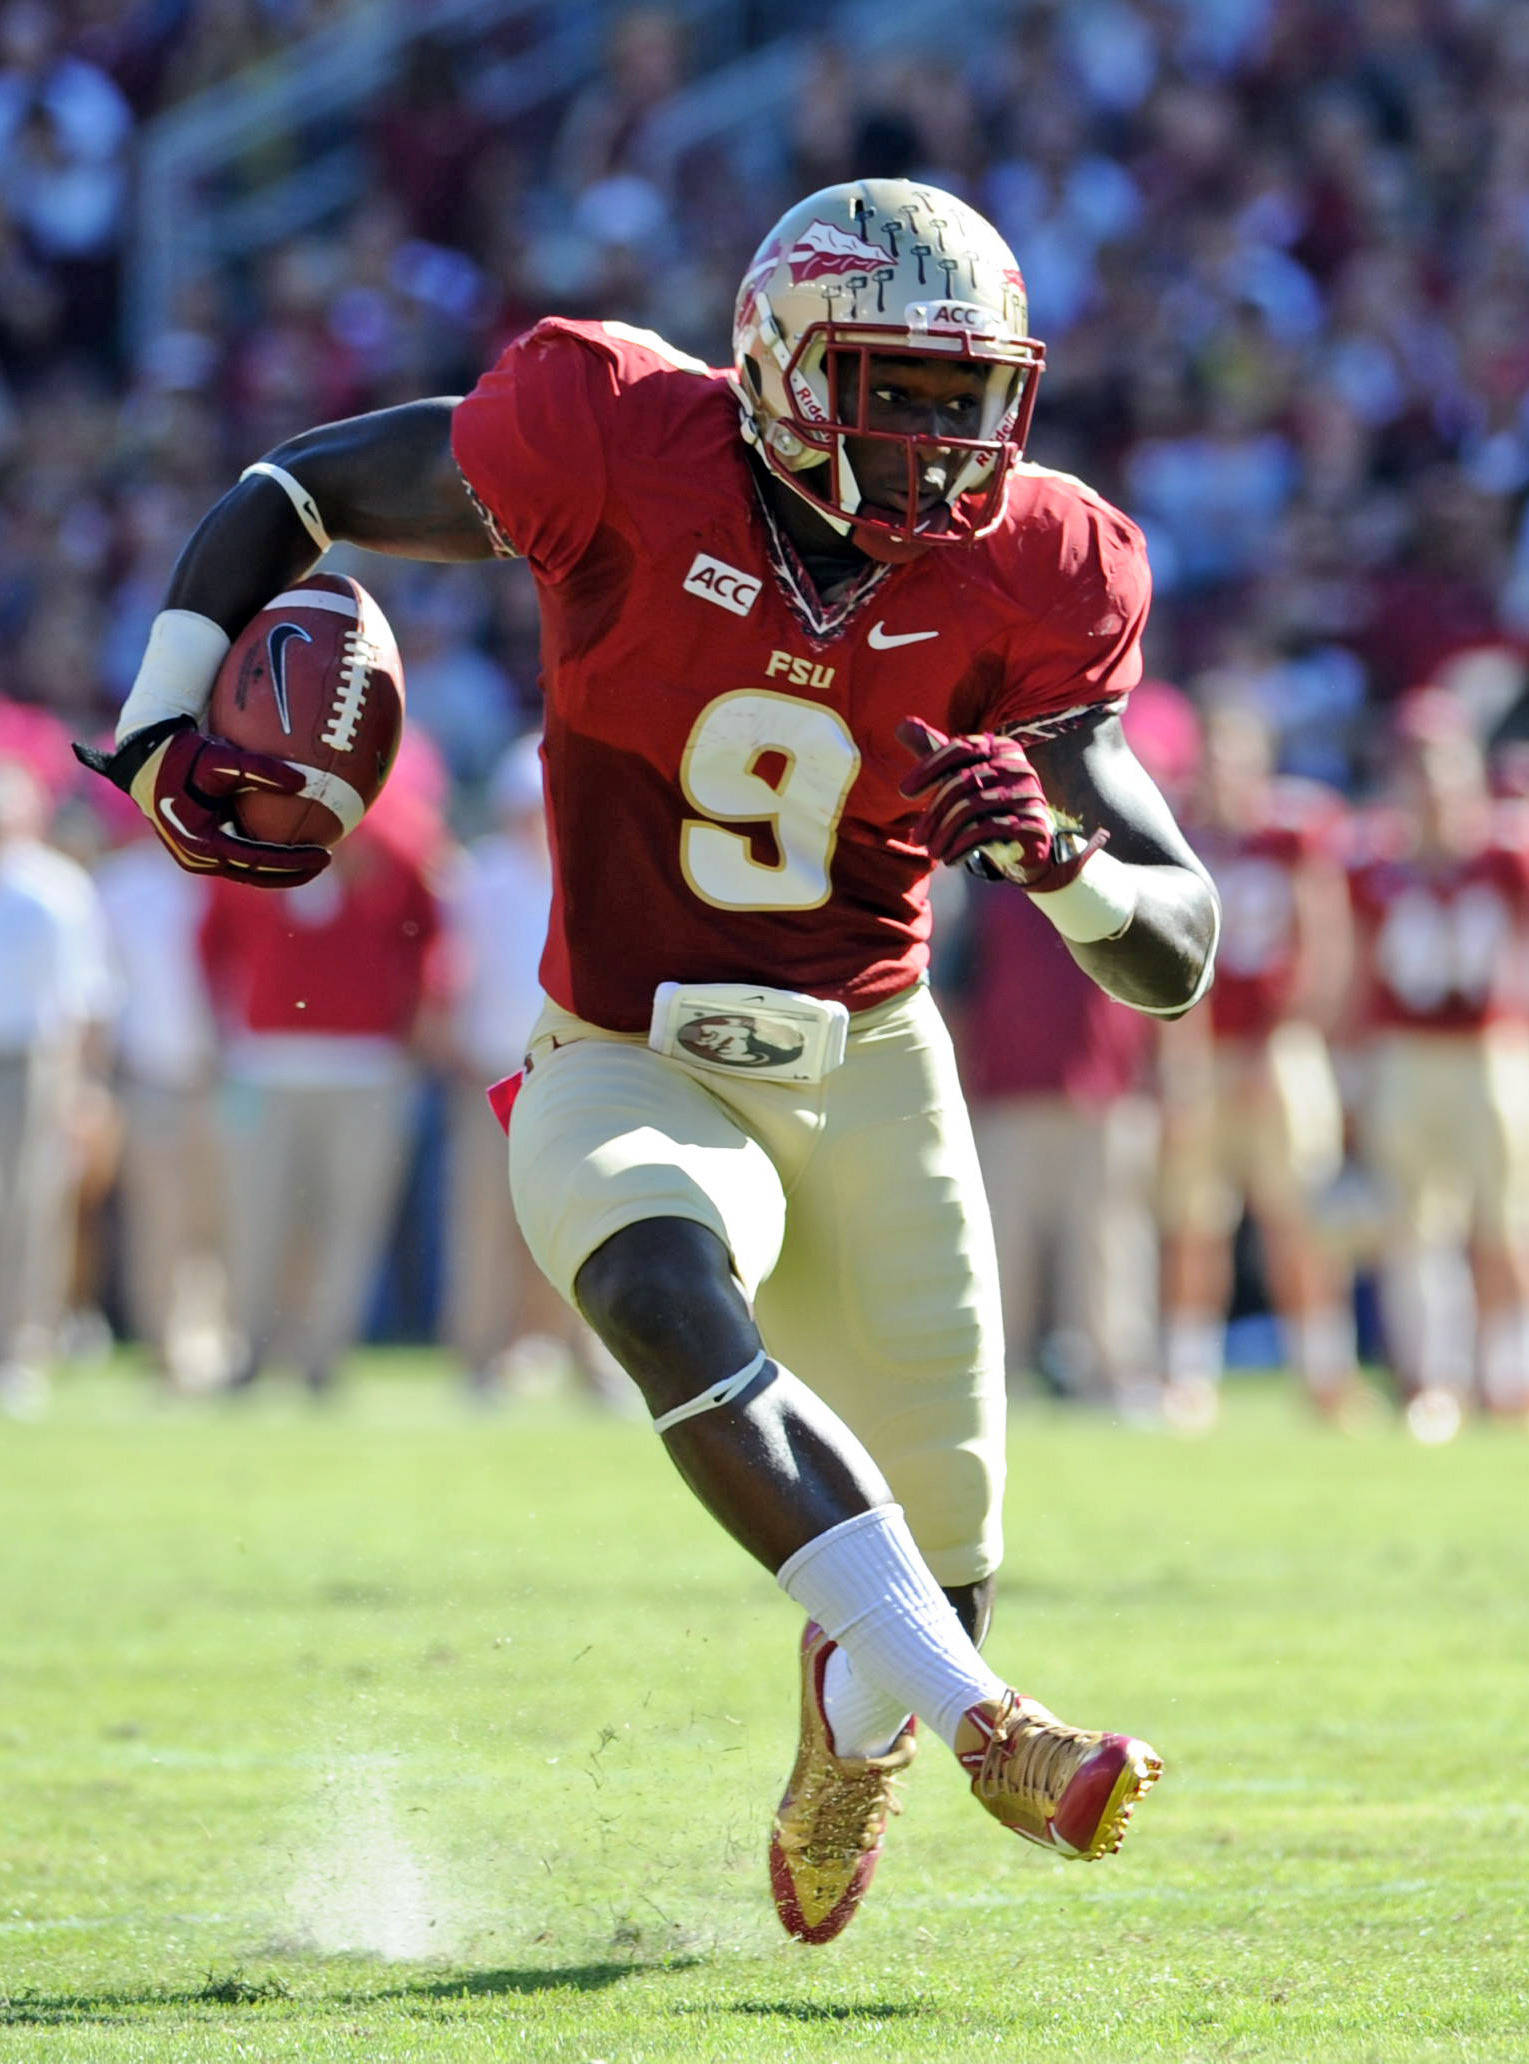 Karlos Williams (9) runs the ball during the first quarter. Mandatory Credit: Melina Vastola-USA TODAY Sports